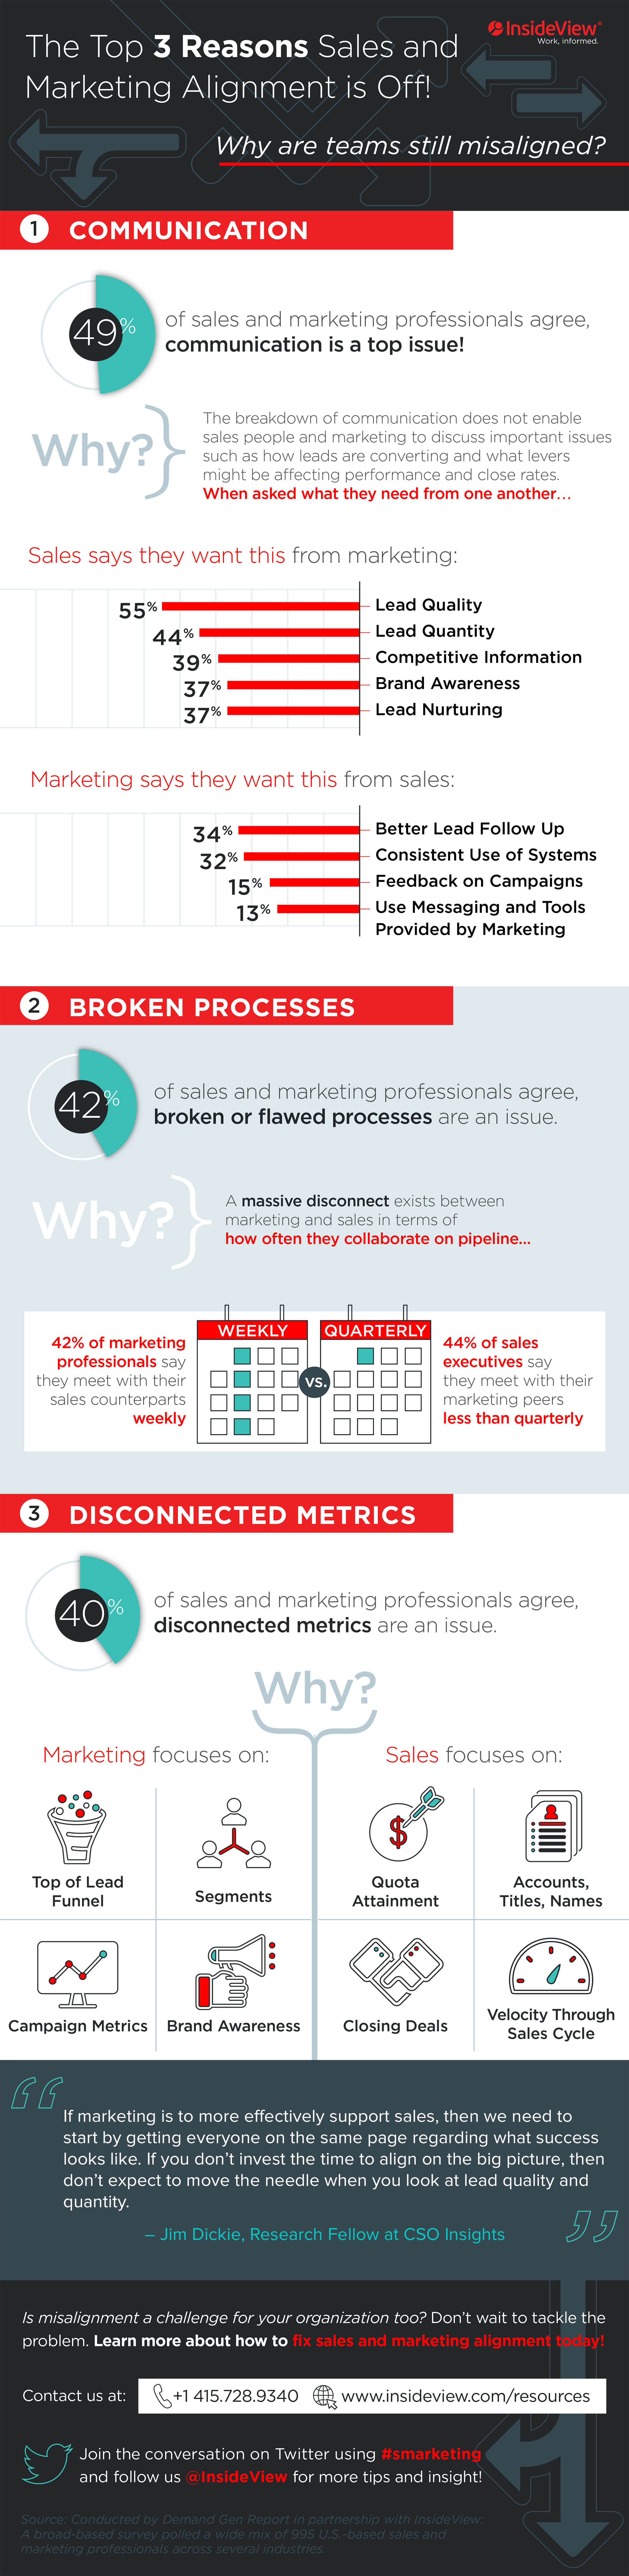 InsideView Top 3 Reasons for Misalignment Infographic